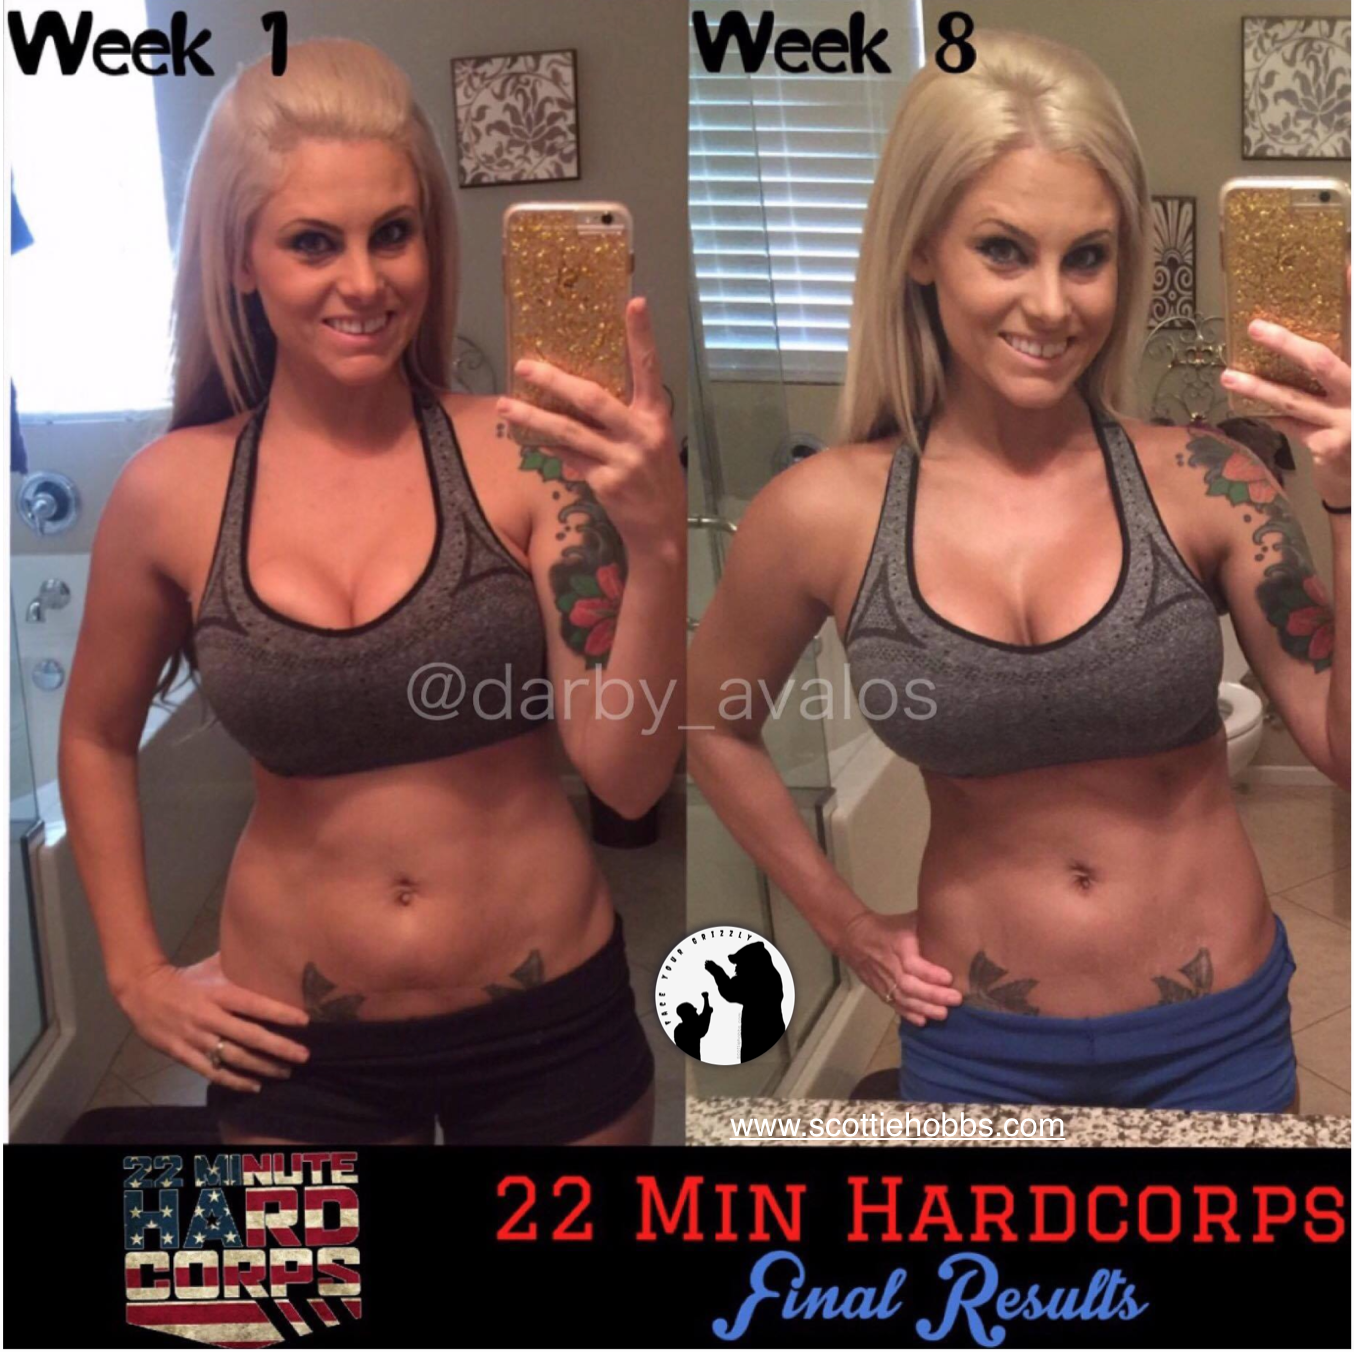 22 Minute Hard Corps Results